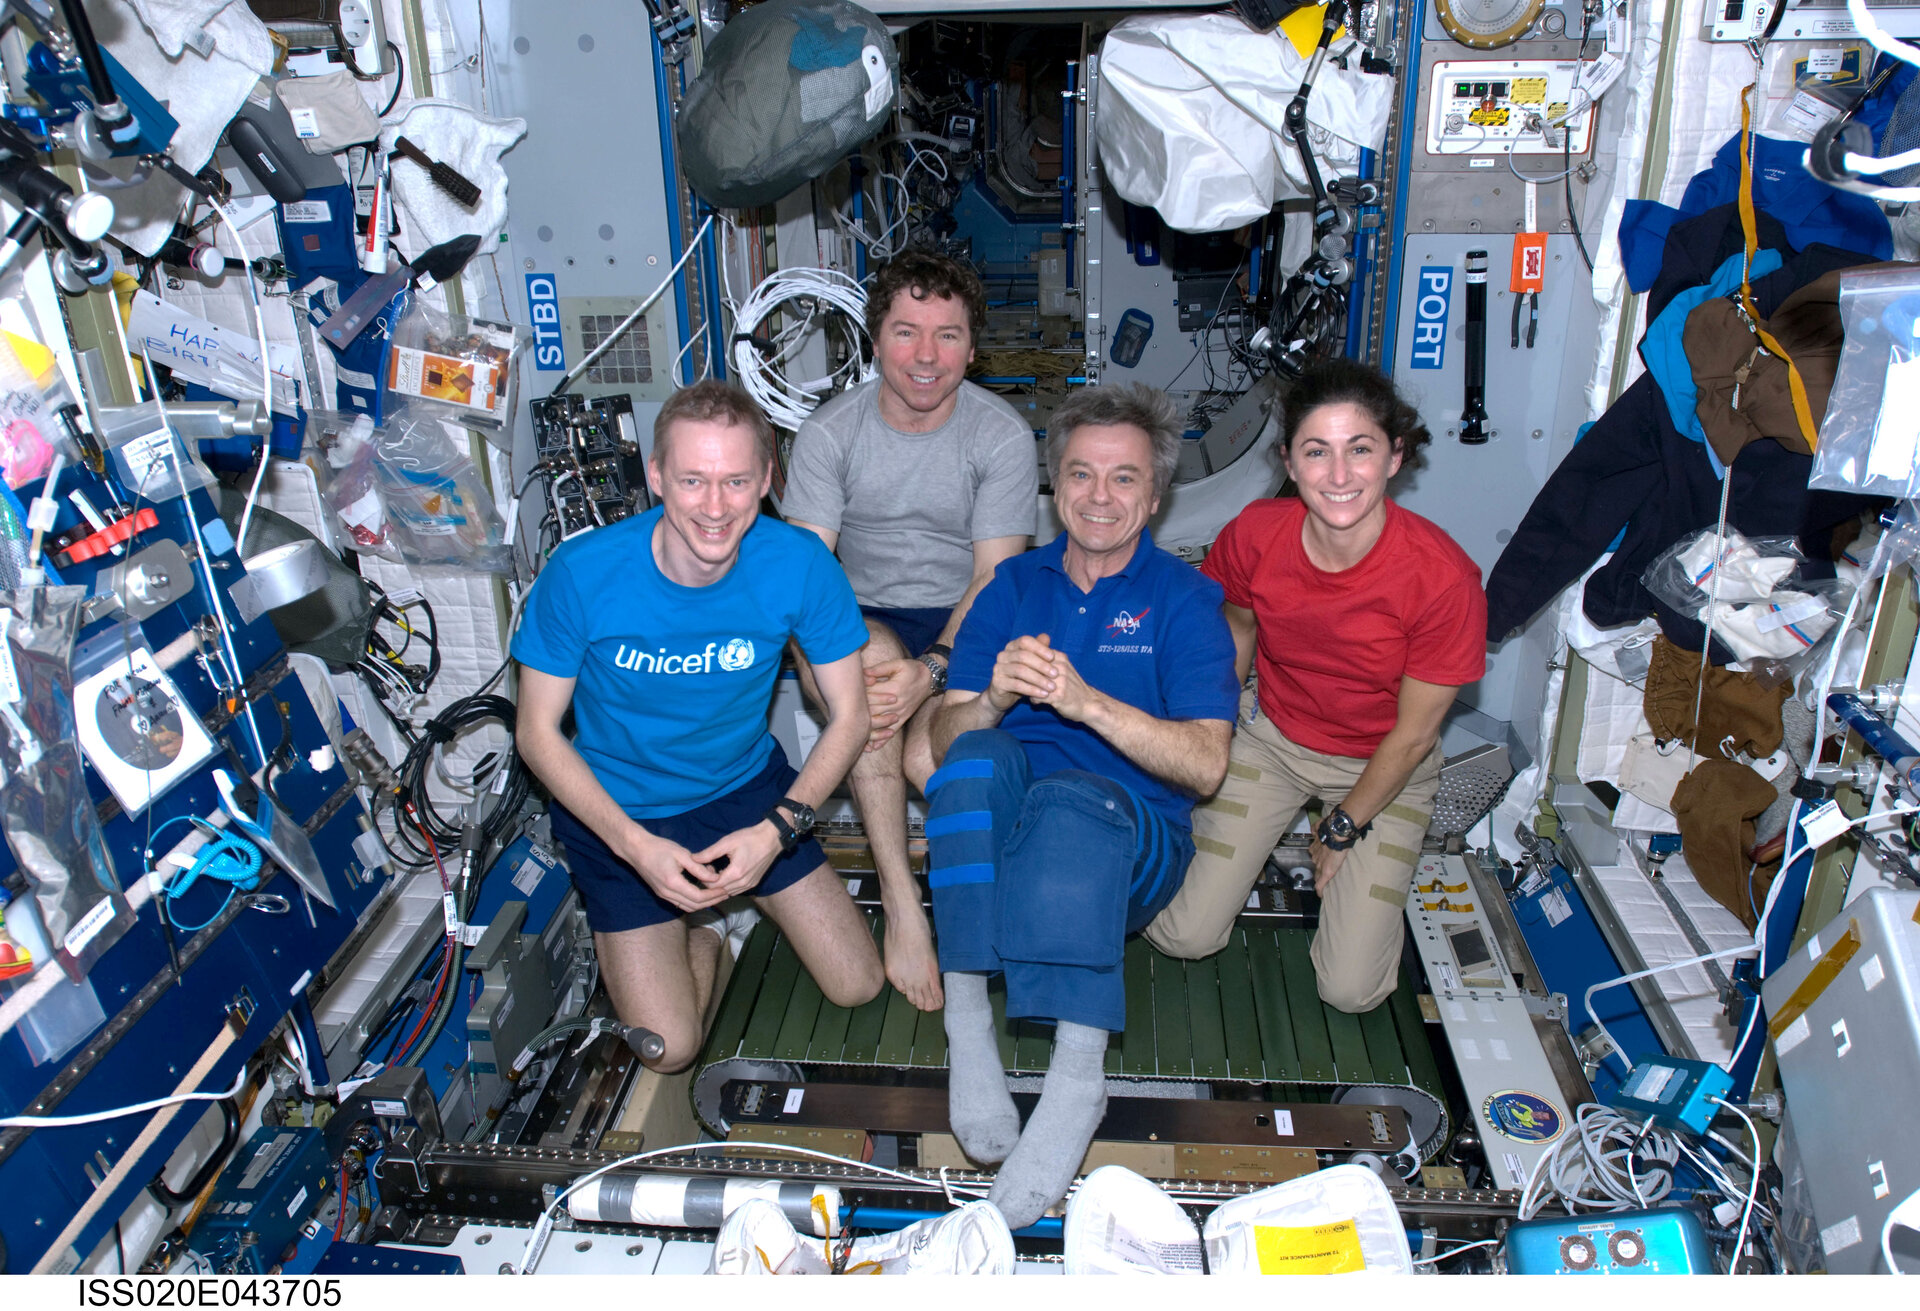 Expedition 20 crewmembers with newly installed COLBERT treadmill